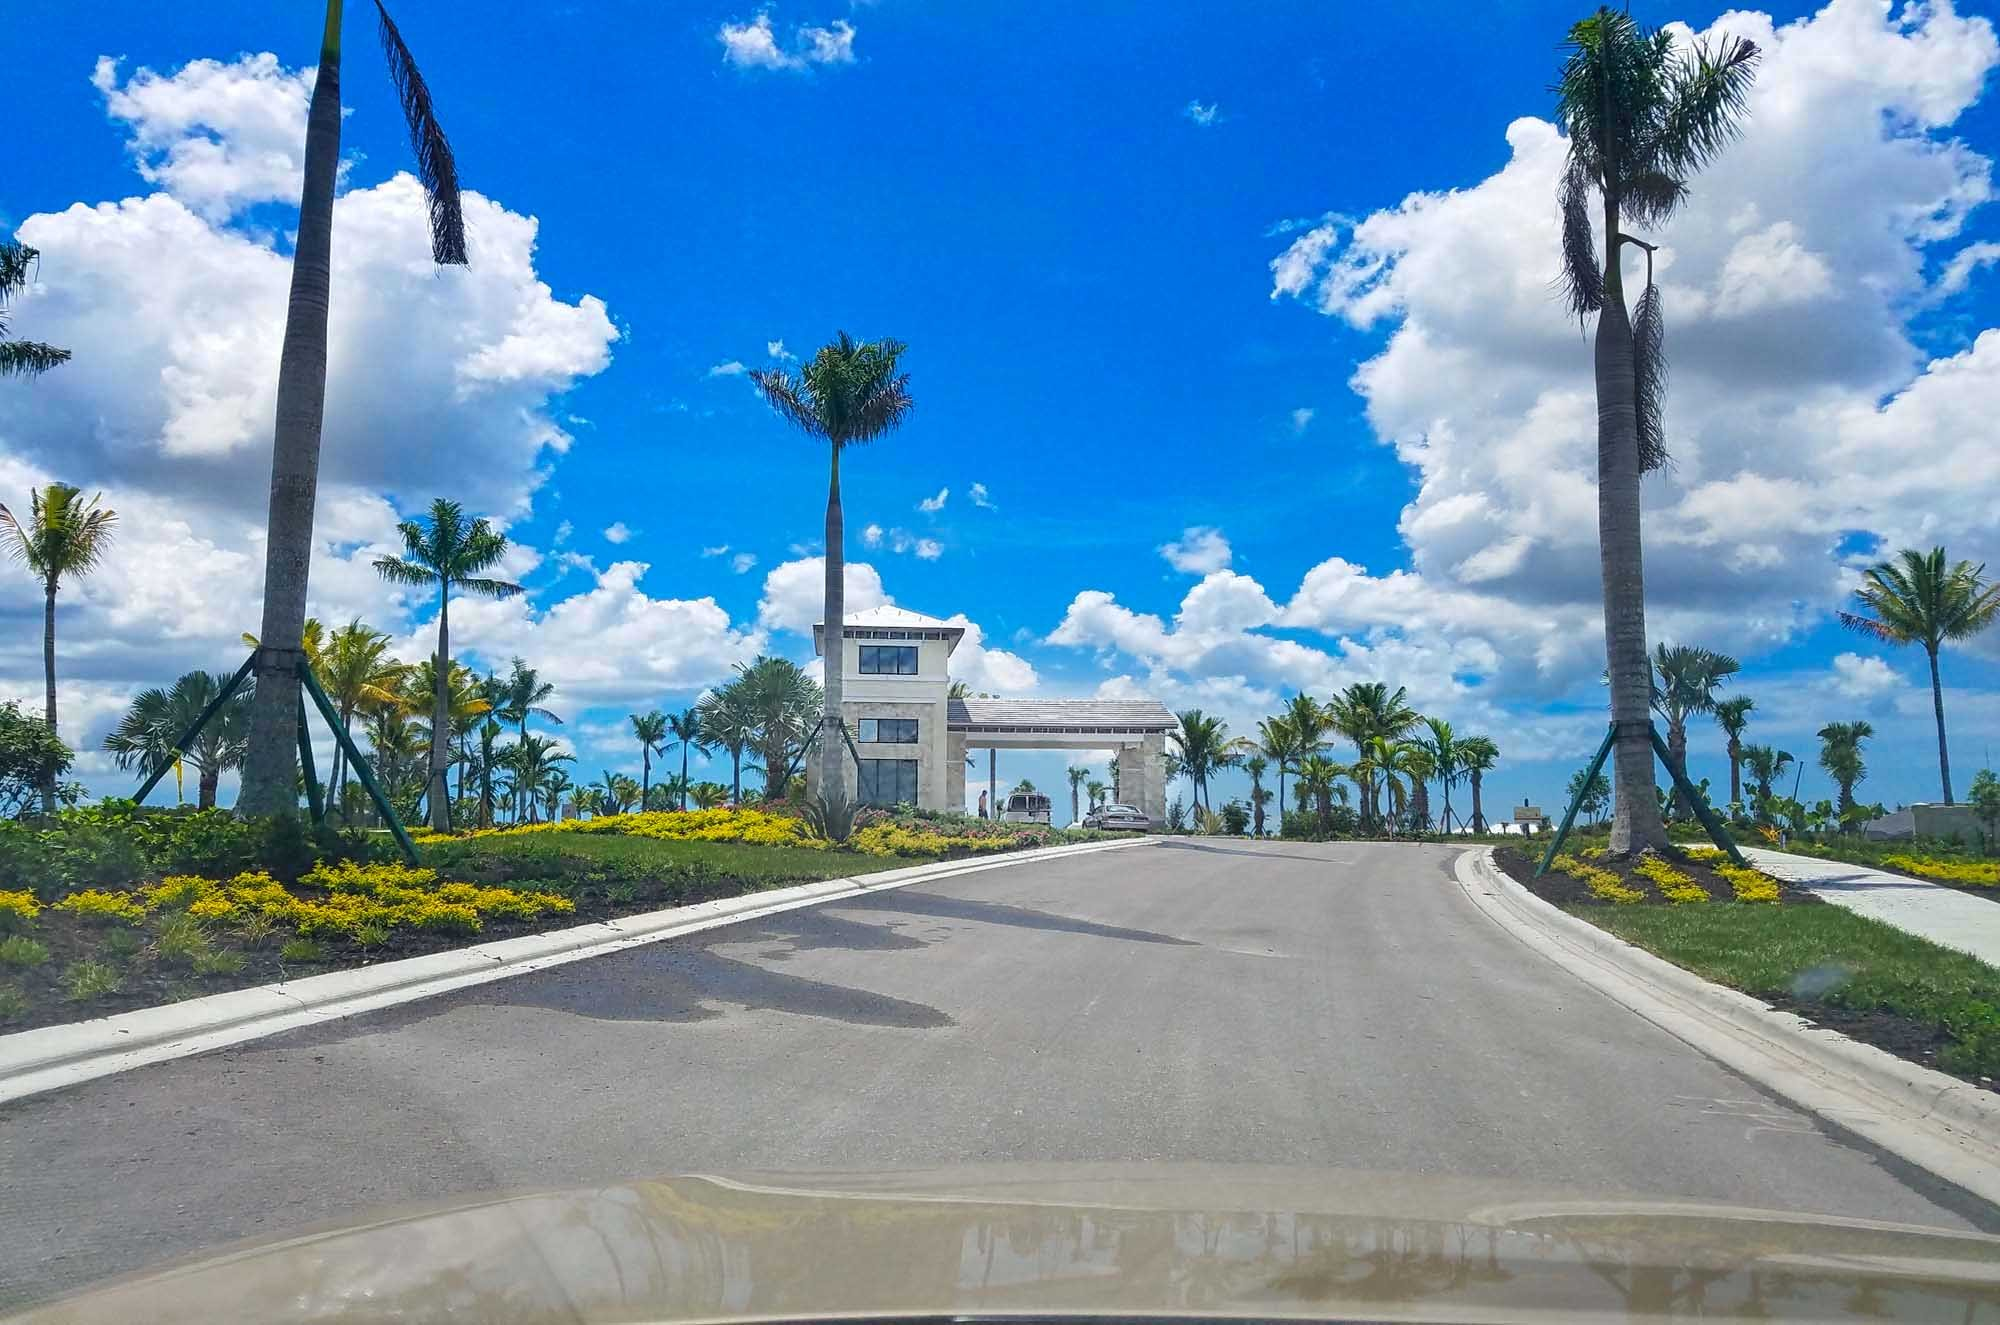 New Community of Esplanade by the Islands